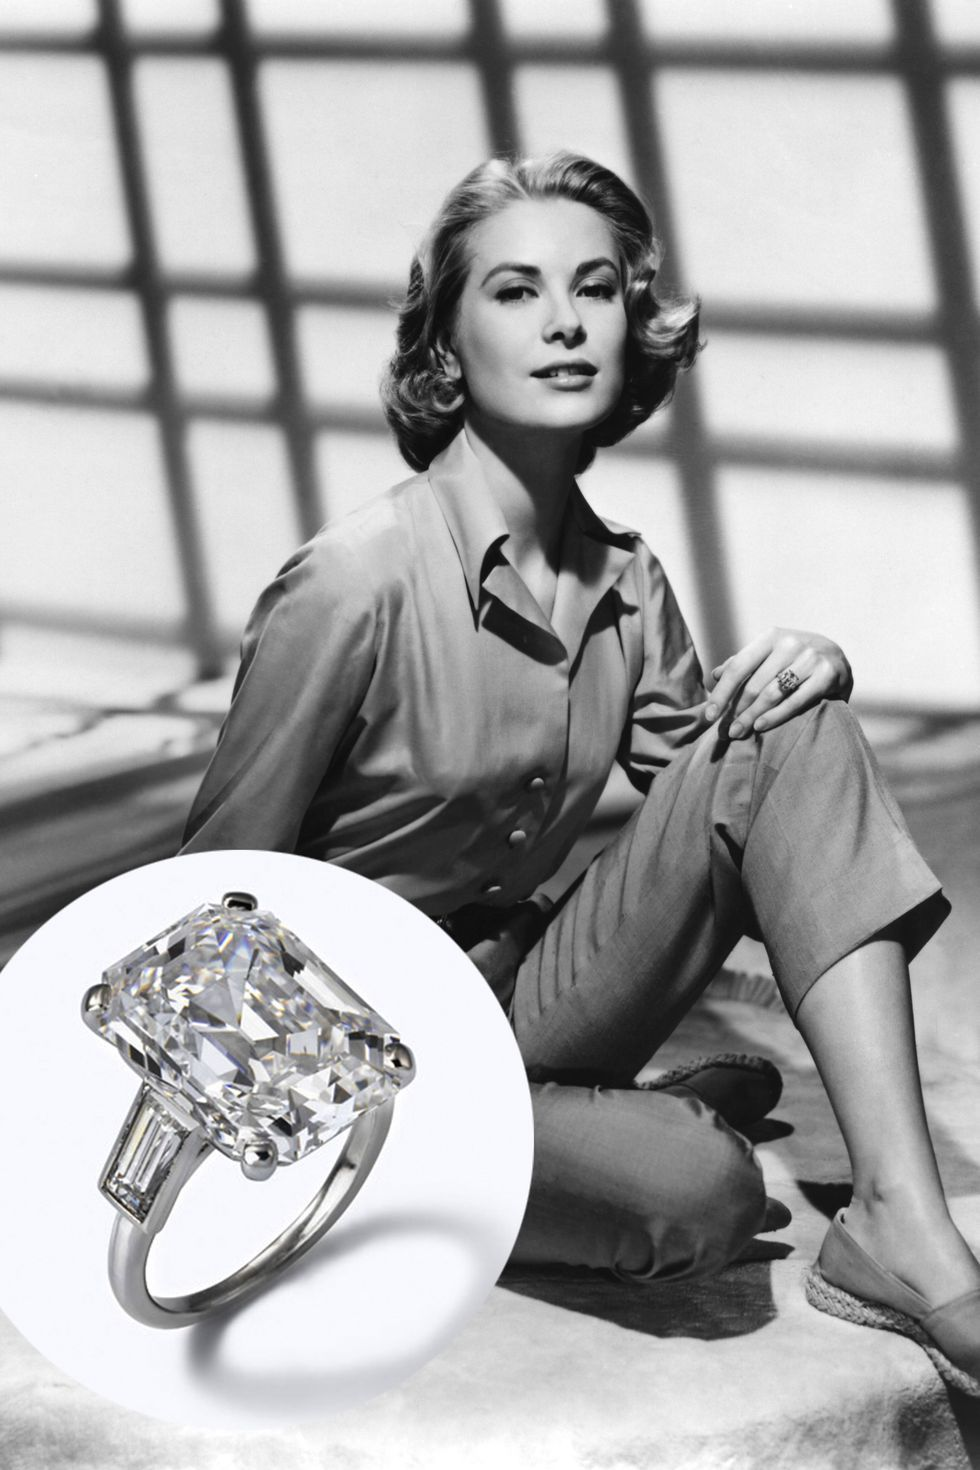 famous eternity ring cost princess band wedding full size engagement of diana most middleton rings royal kate